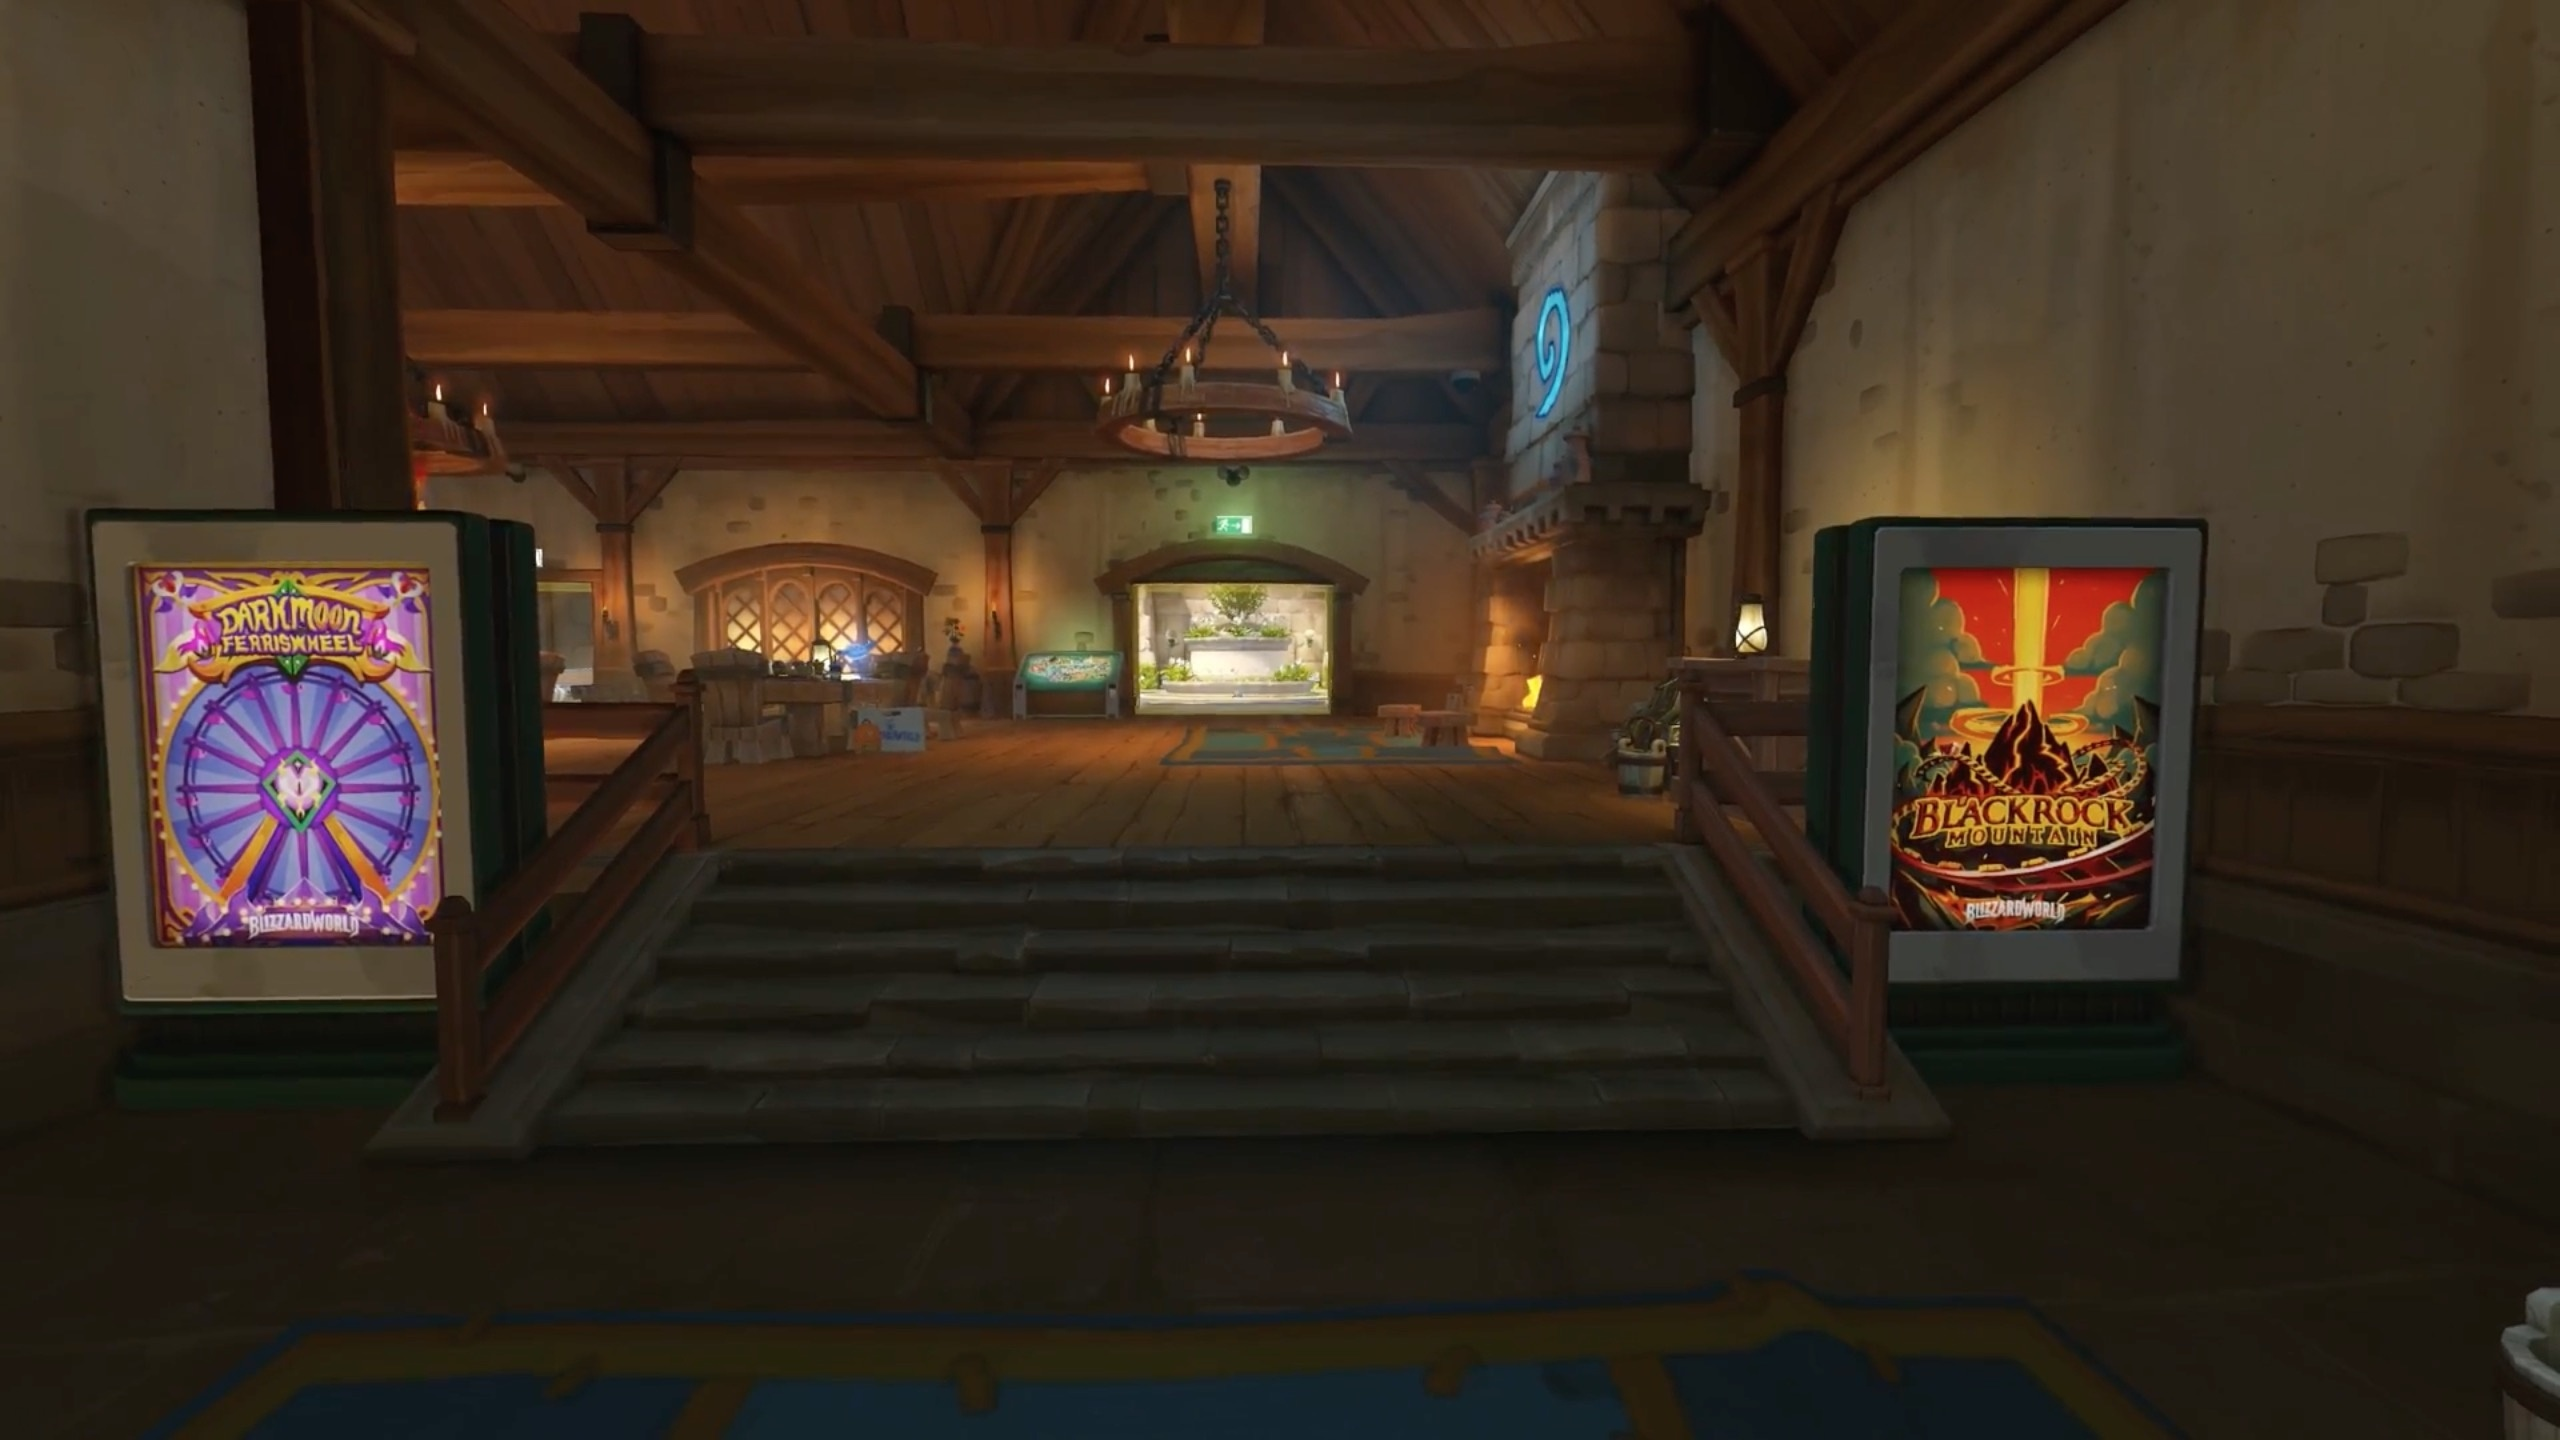 The WoW References in the Overwatch Blizzard World Map ... World Map Overwatch on world culture, world military, world atlas, world flag, world projection, world globe, world shipping lanes, world of warships, world glode, world wallpaper, world earth, world statistics, world wide web, world border, world travel, world hunger, world history, world records, world most beautiful nature, world war,